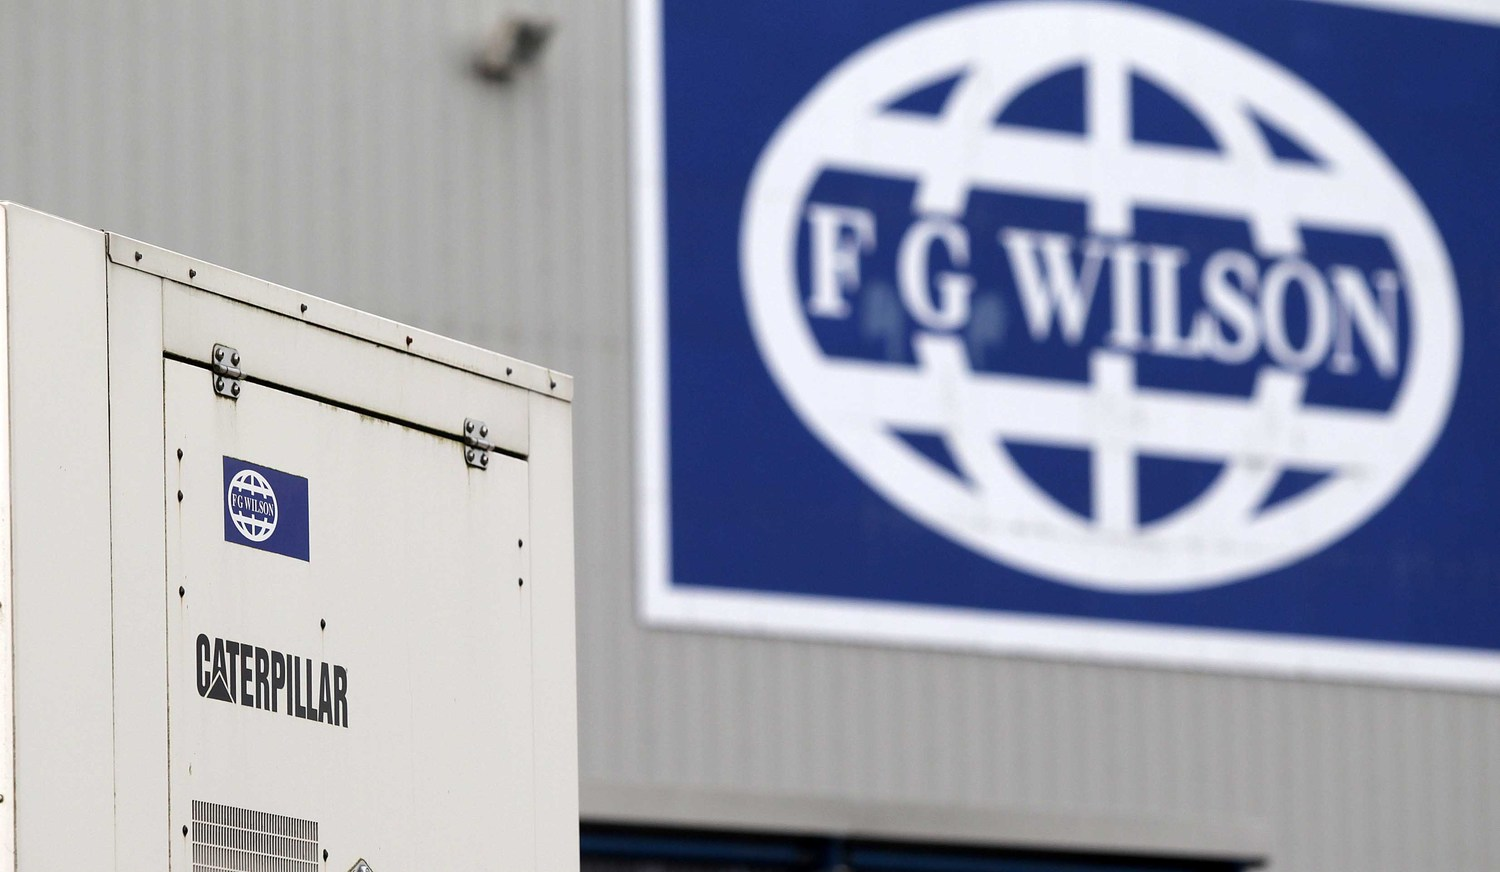 760 workers at FG Wilson are being made redundant but look set to miss out on EU funding